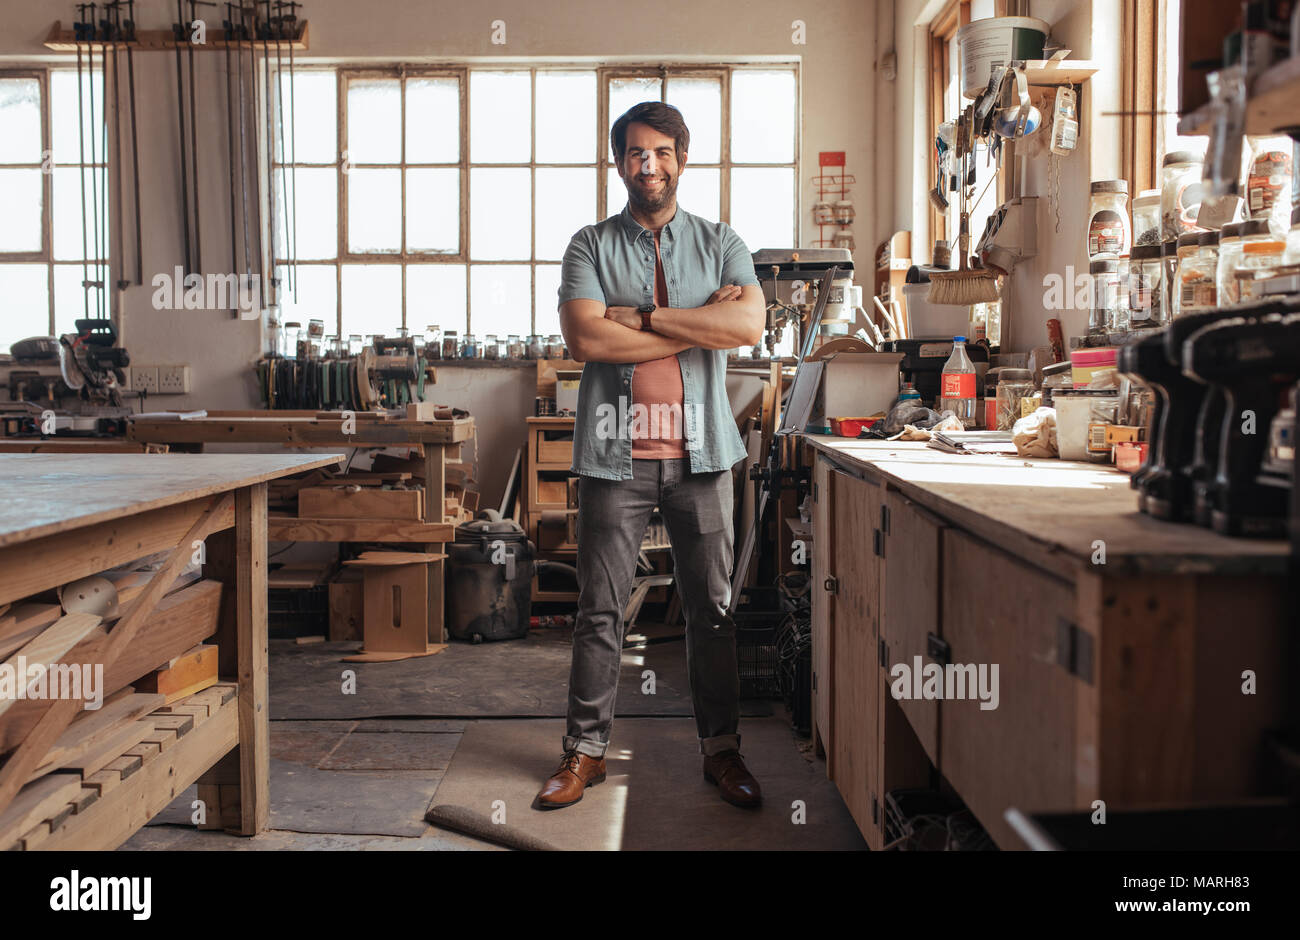 Smiling young woodworker standing in his workshop full of tools - Stock Image